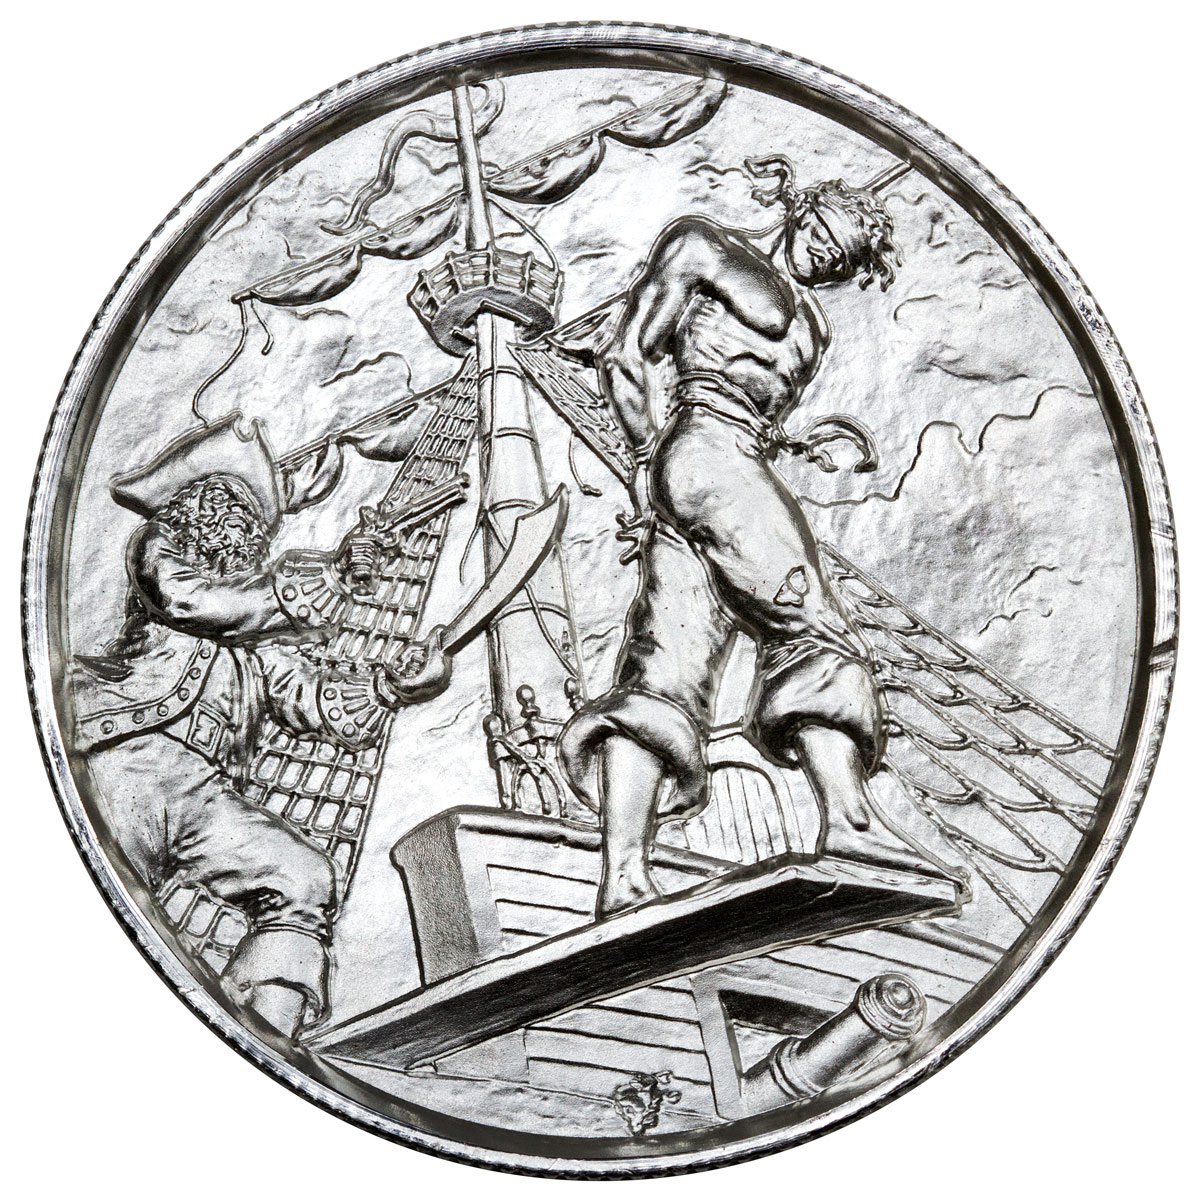 Elemetal Mint 2 oz. Silver Privateer Ultra High Relief Round - The Plank - Made in USA